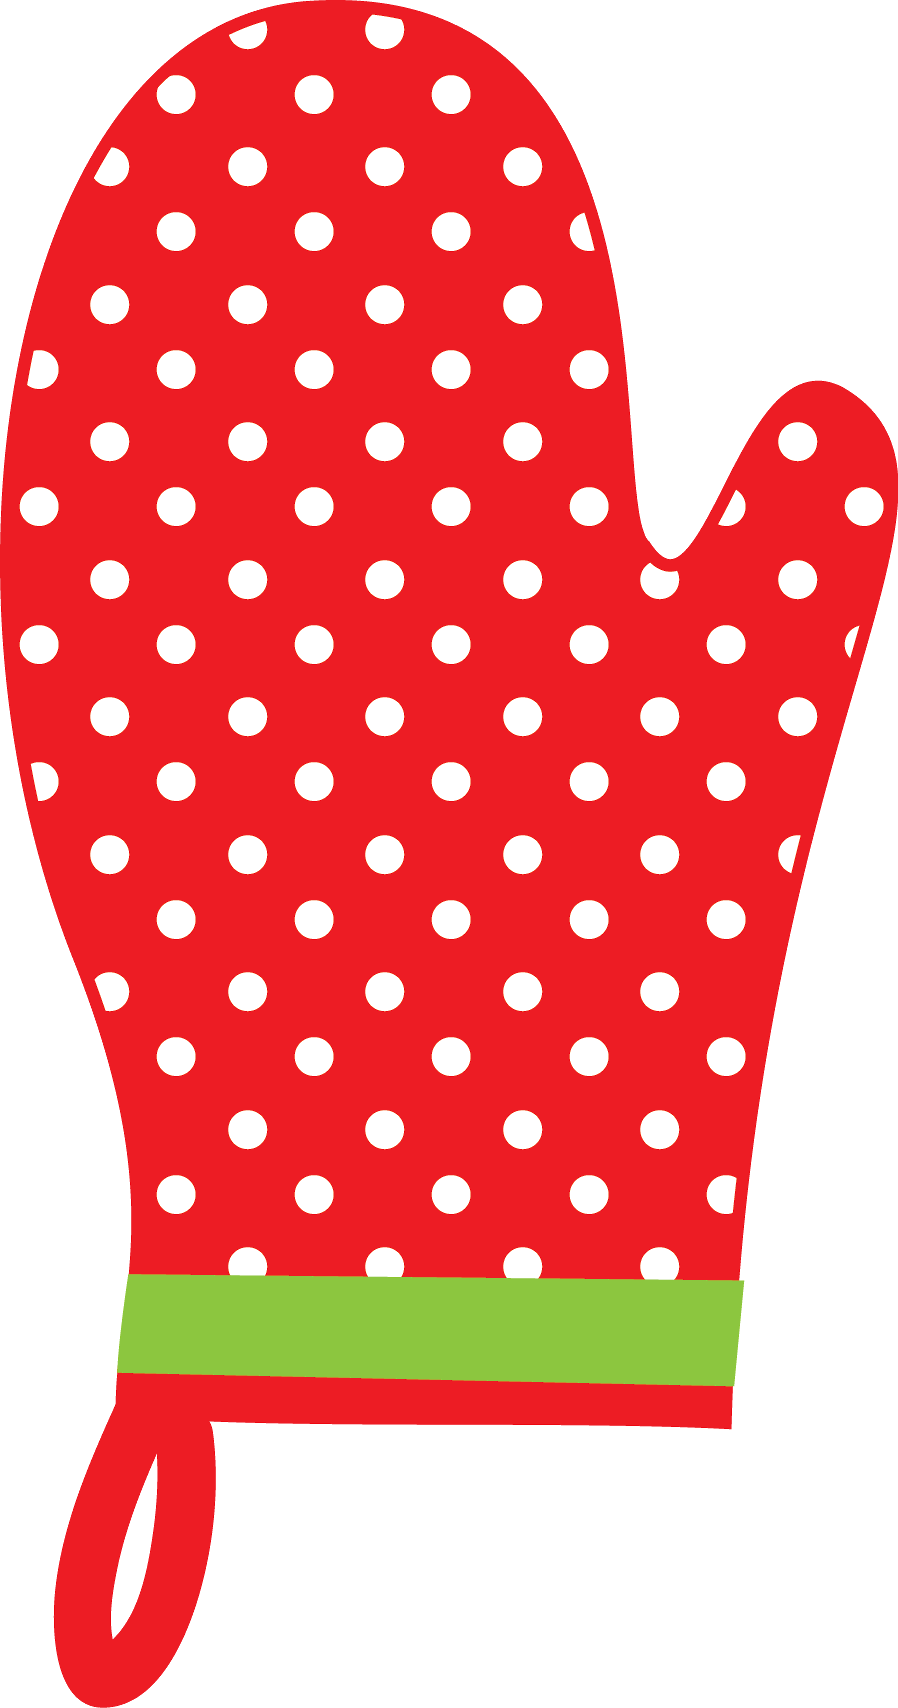 Napkin clipart checkered. Christmas oven mitt clip